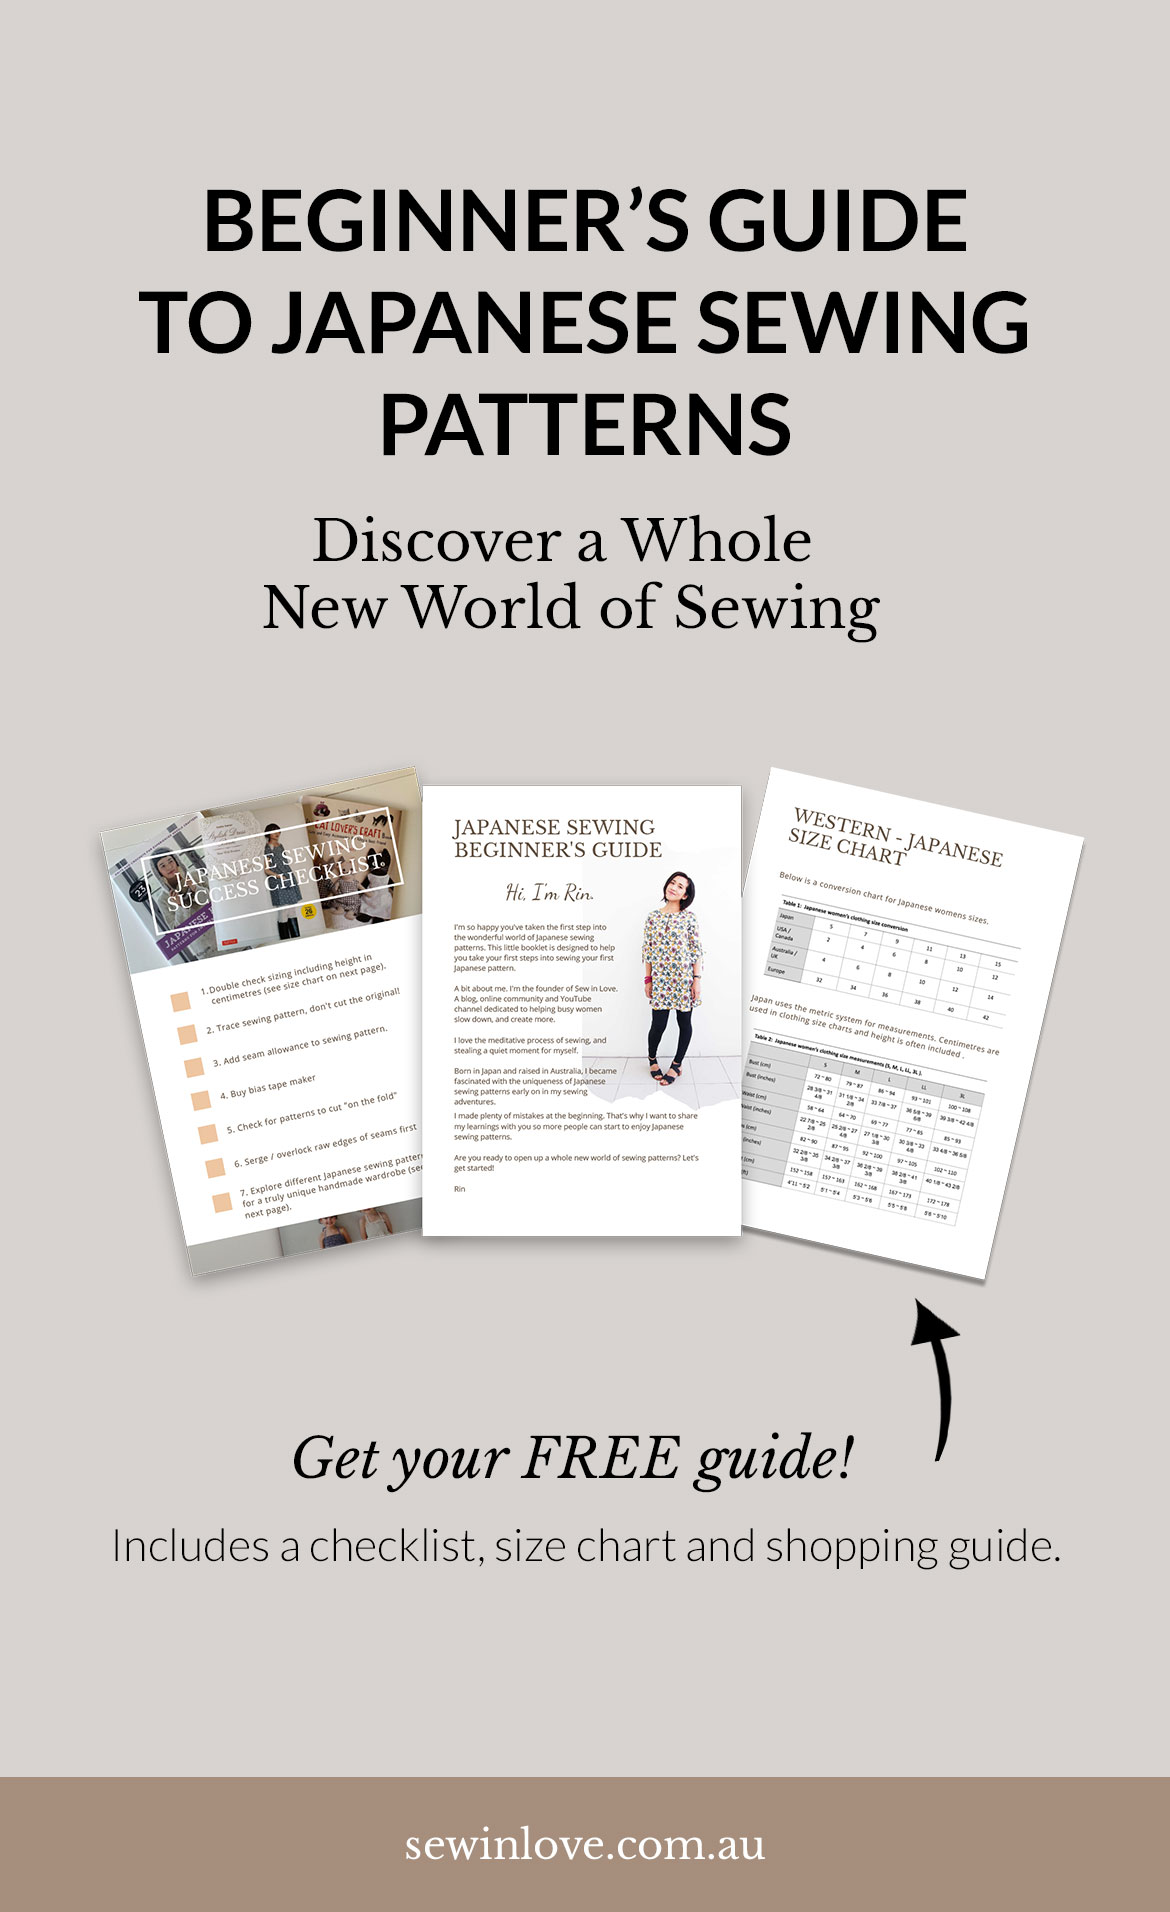 Free Japanese Sewing Patterns Beginner's Guide - Curious but confused about sewing Japanese patterns? Get the free guide to help you avoid costly mistakes. It includes a checklist, shopping guide and a size conversion chart. Get the guide at https://www.sewinlove.com.au/2019/09/03/mistakes-beginners-japanese-sewing-patterns/